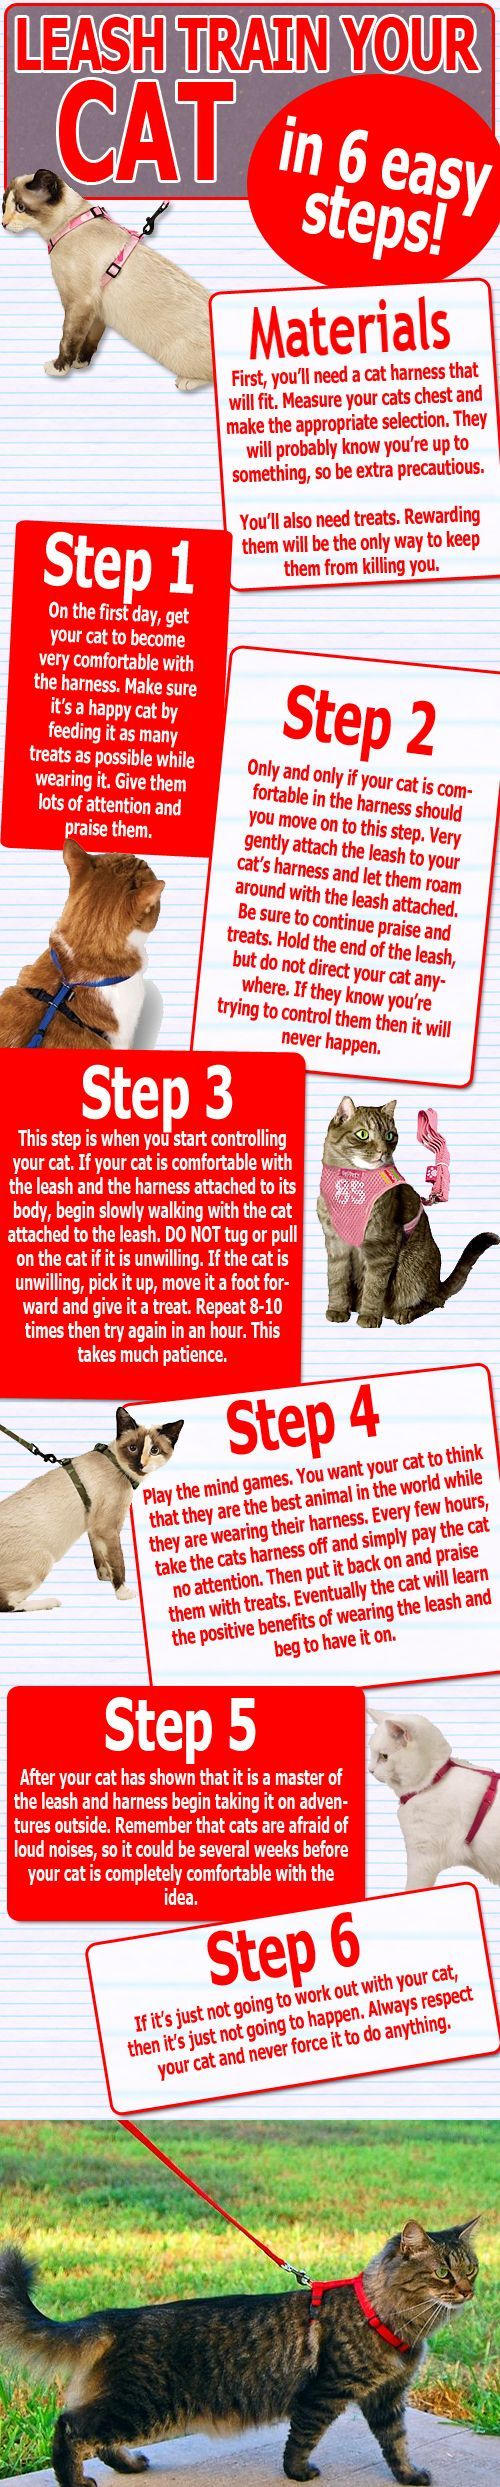 Leash train your cat